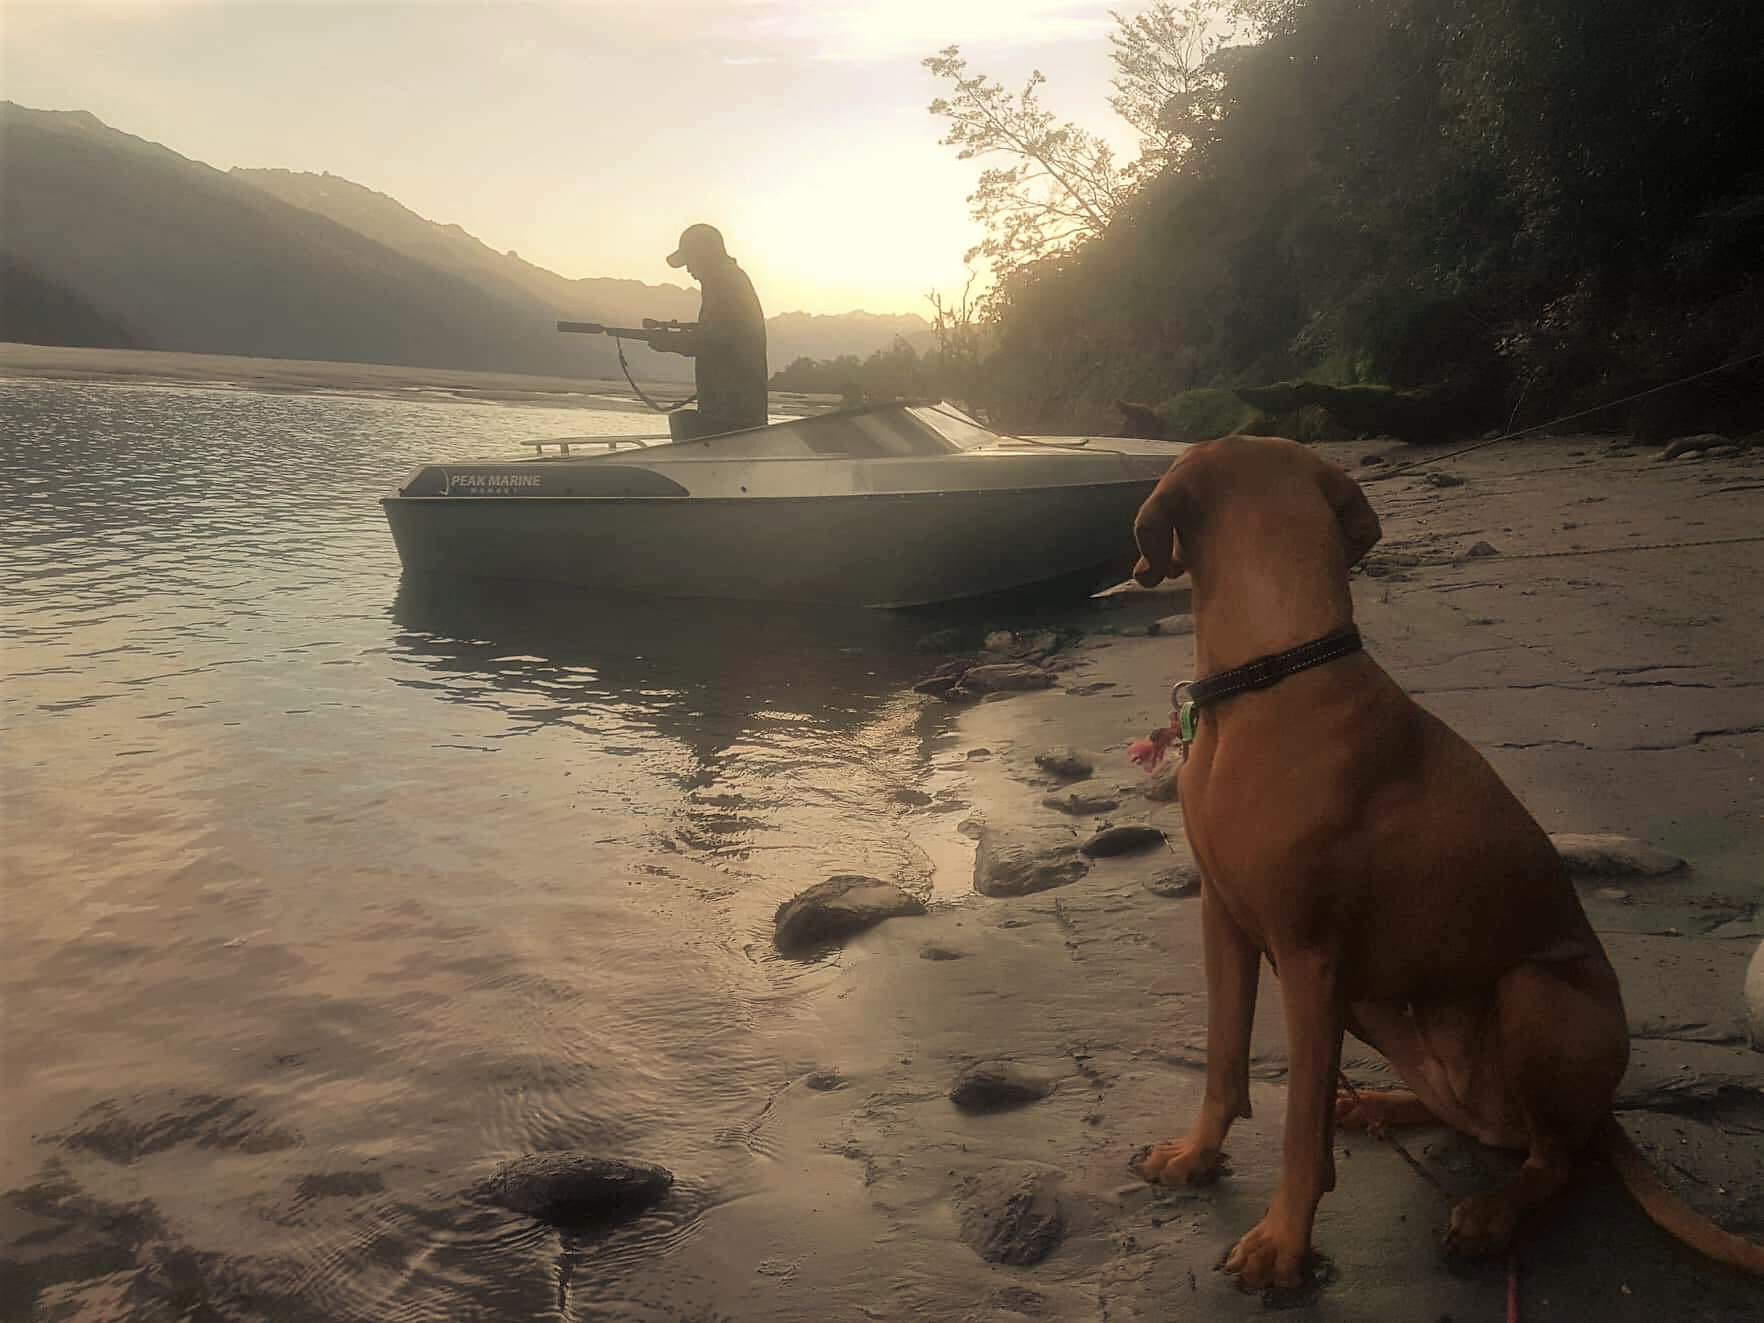 Summer meat hunting with a jetboat - image @Amy Louise